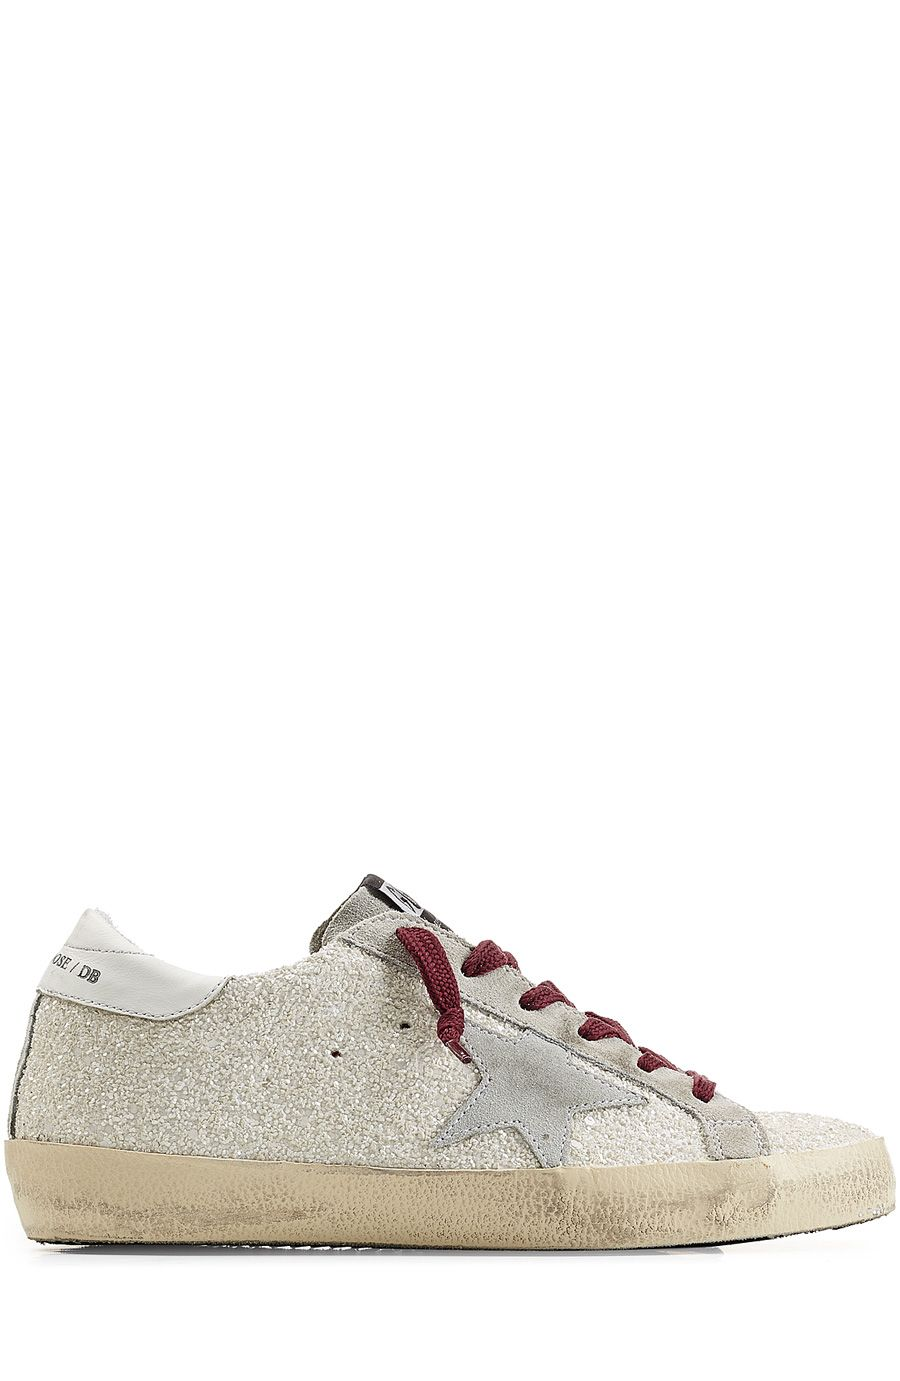 GOLDEN GOOSE - Super Star Glitter Sneakers | STYLEBOP.com